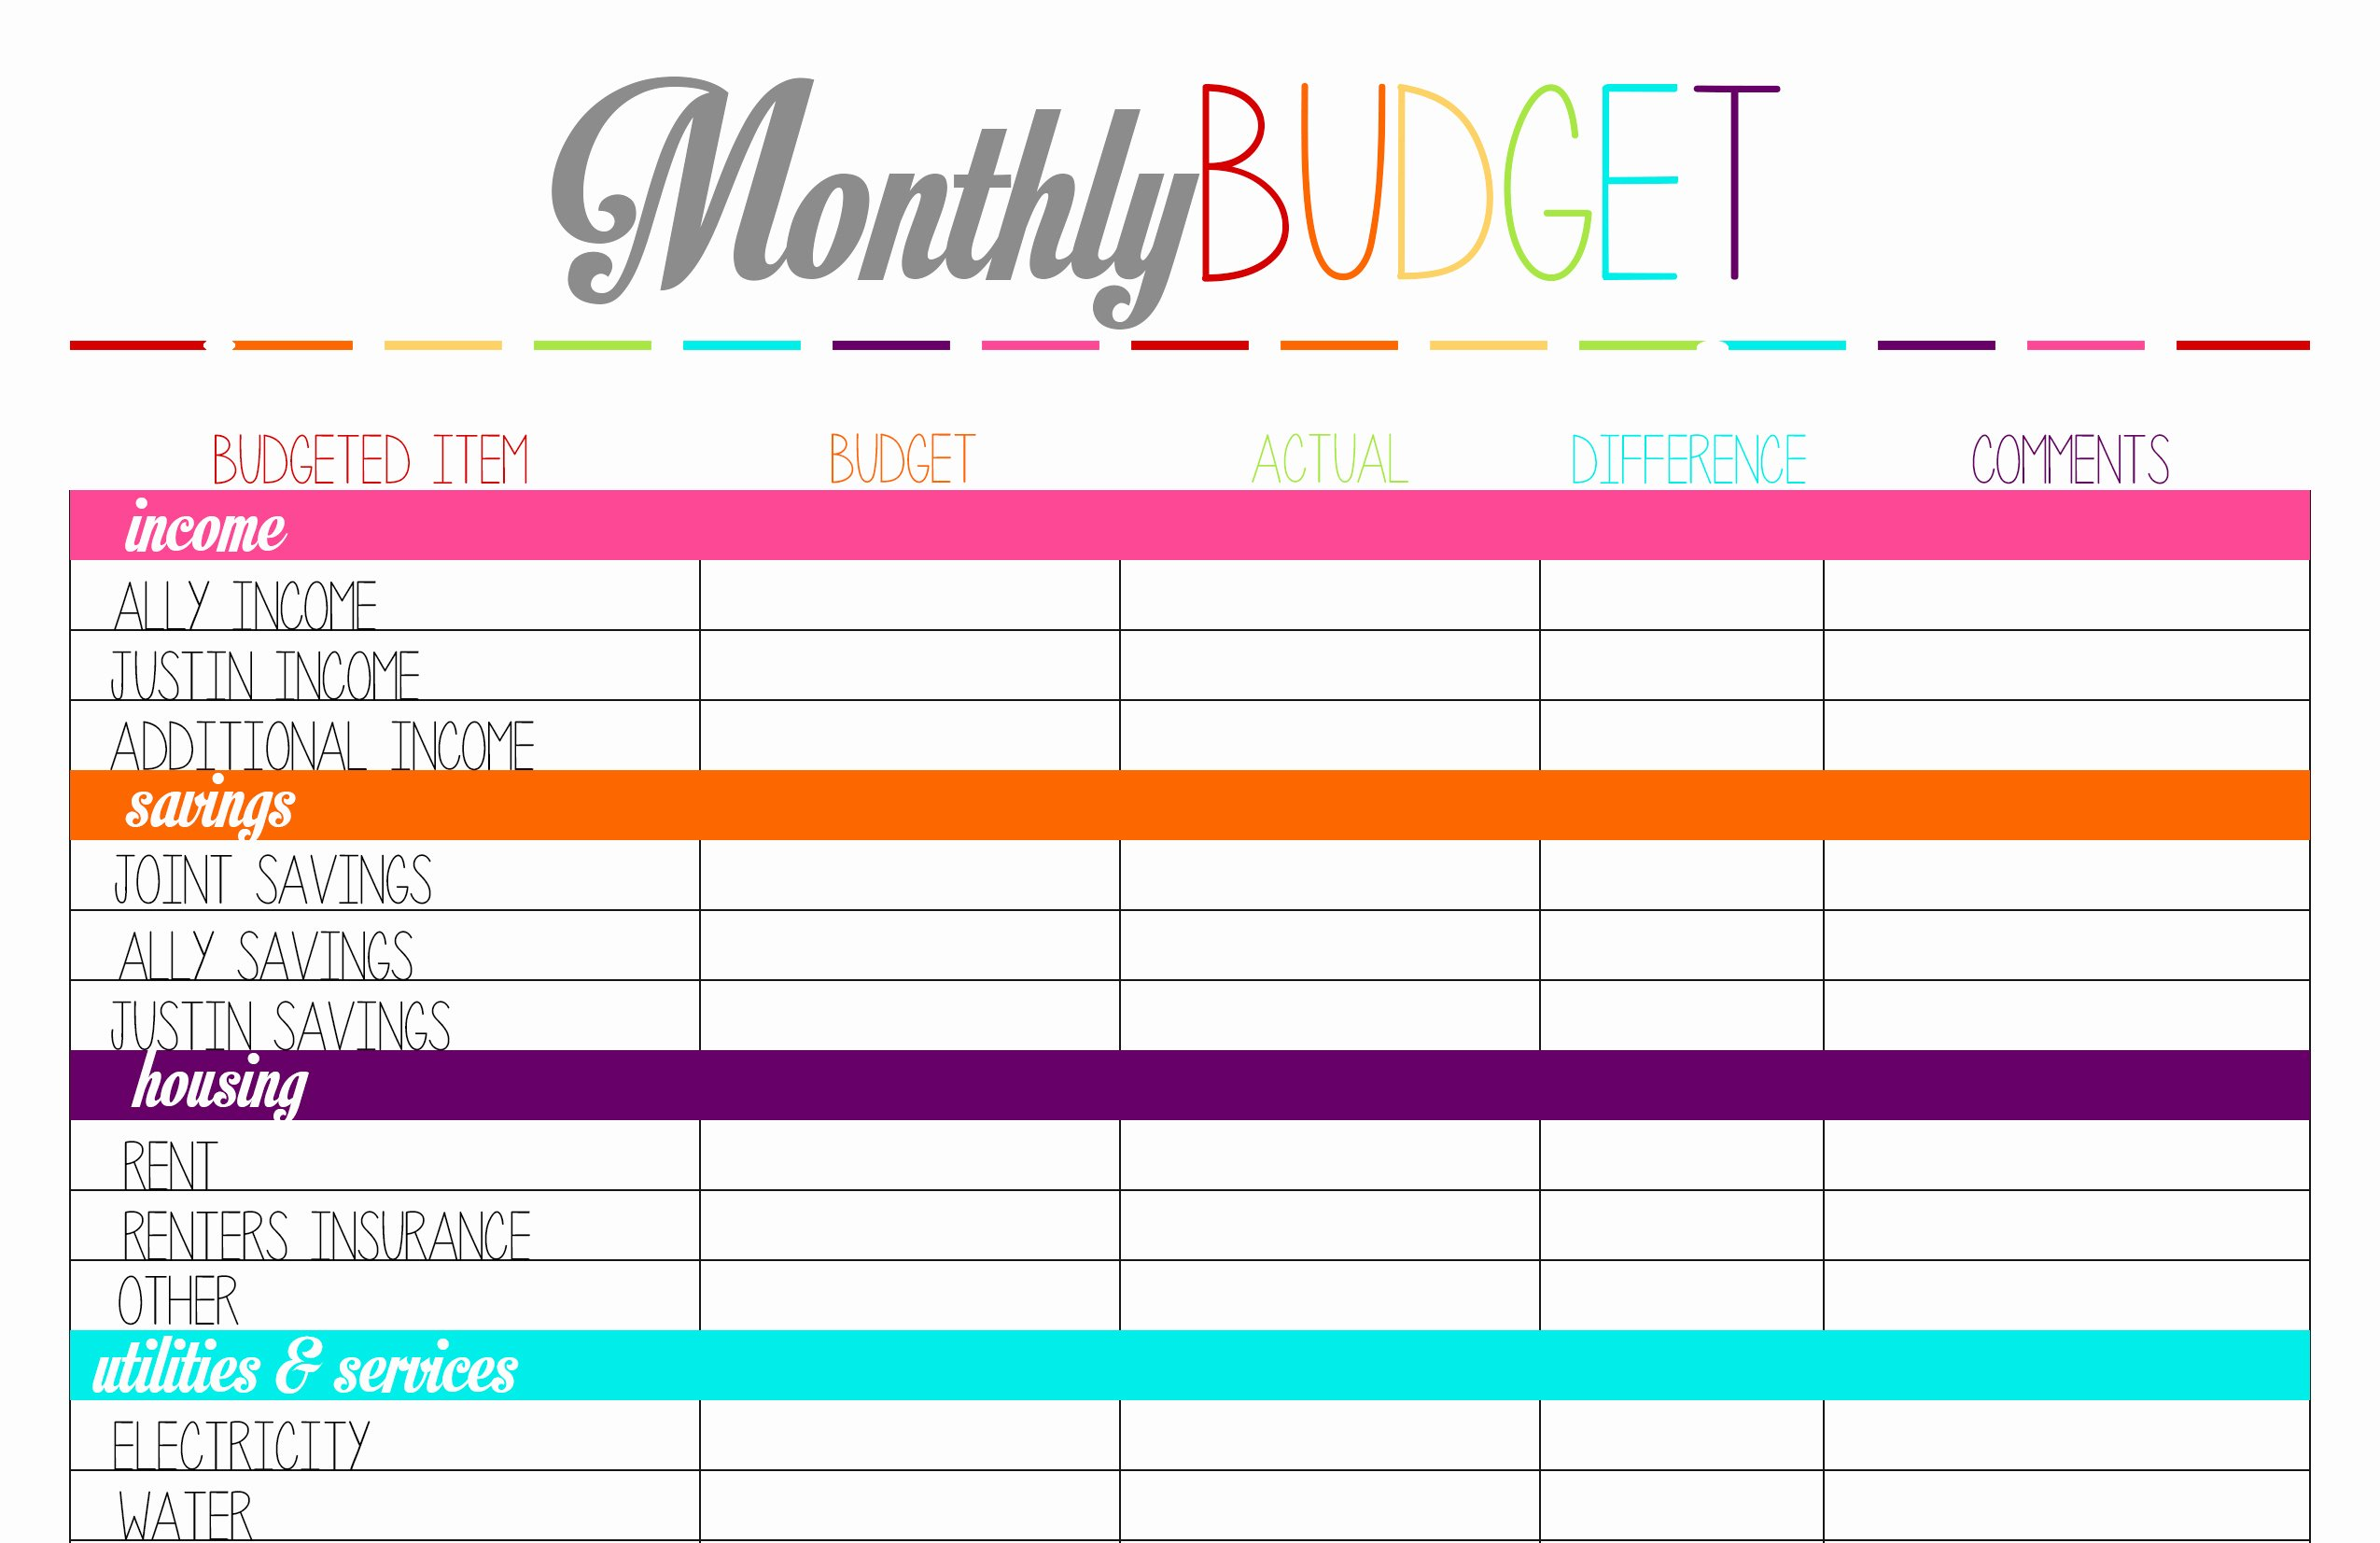 Monthly Budget Worksheet Printable Unique top 5 Posts Of 2014 – Ally Jean Blog